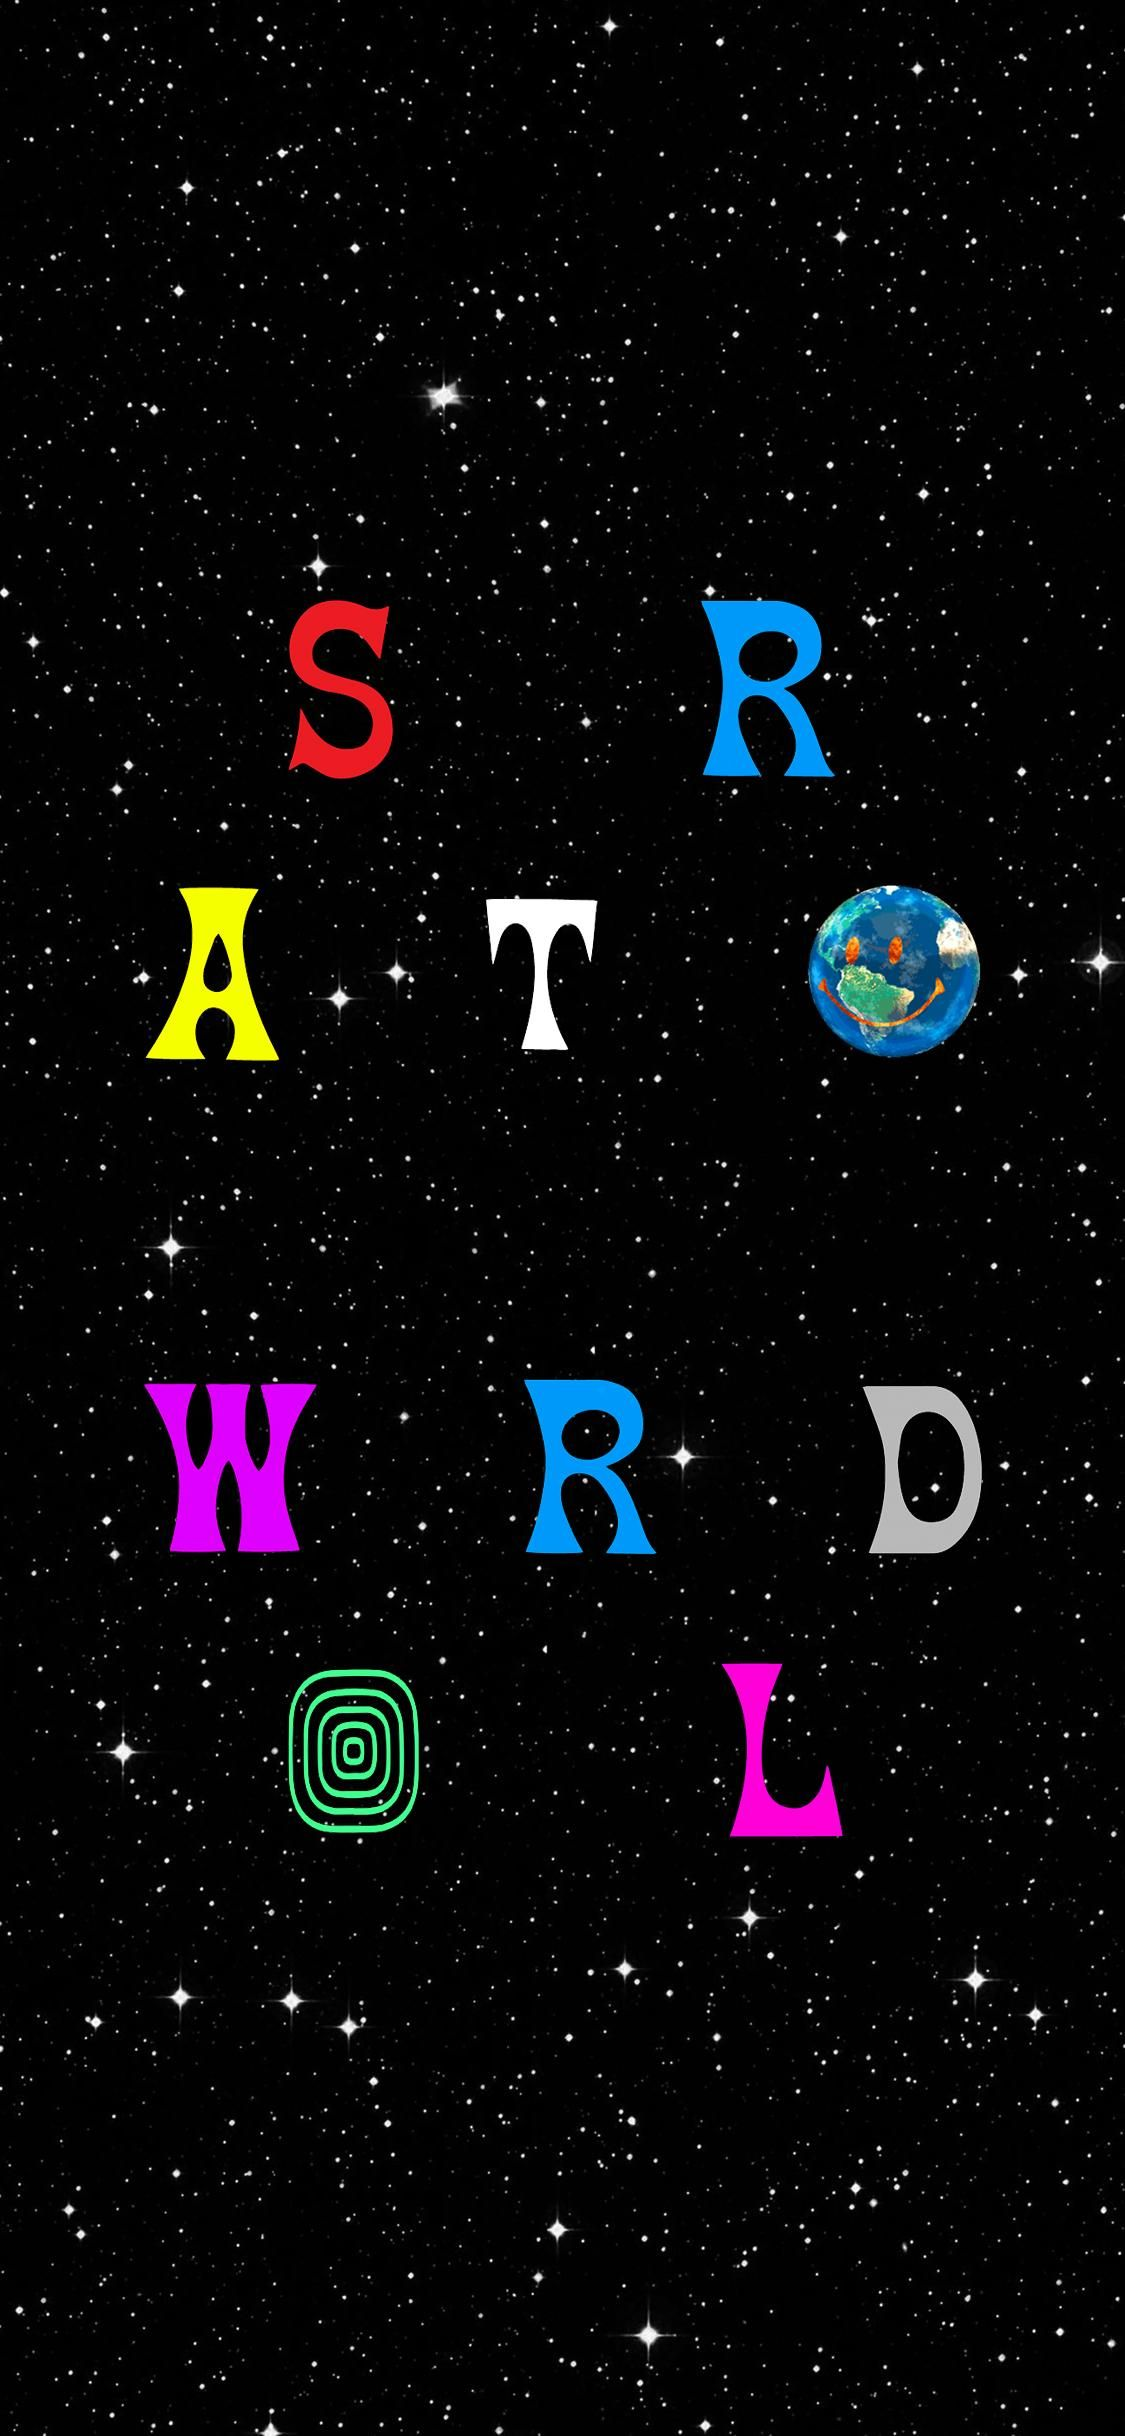 Astroworld Iphone Wallpaper Music Travis Scott Iphone Wallpaper Hype Wallpaper